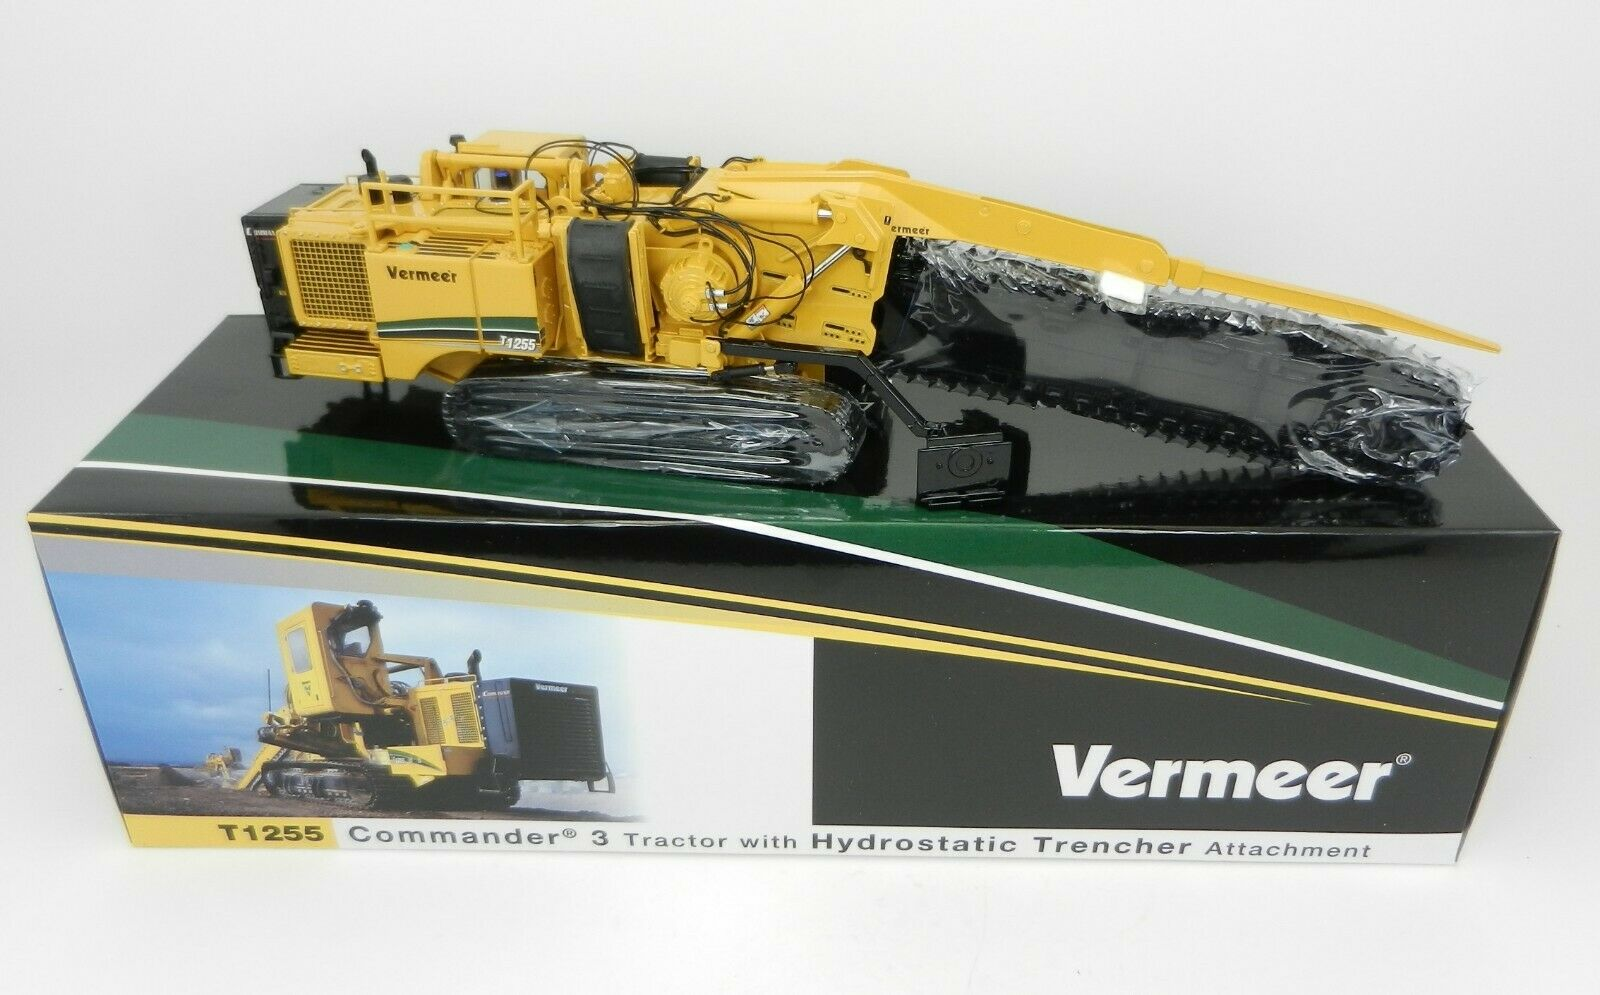 1 50 TWH VERMEER Model T1255 Commander 3 Tractor w Hydrostatic Trencher NIB